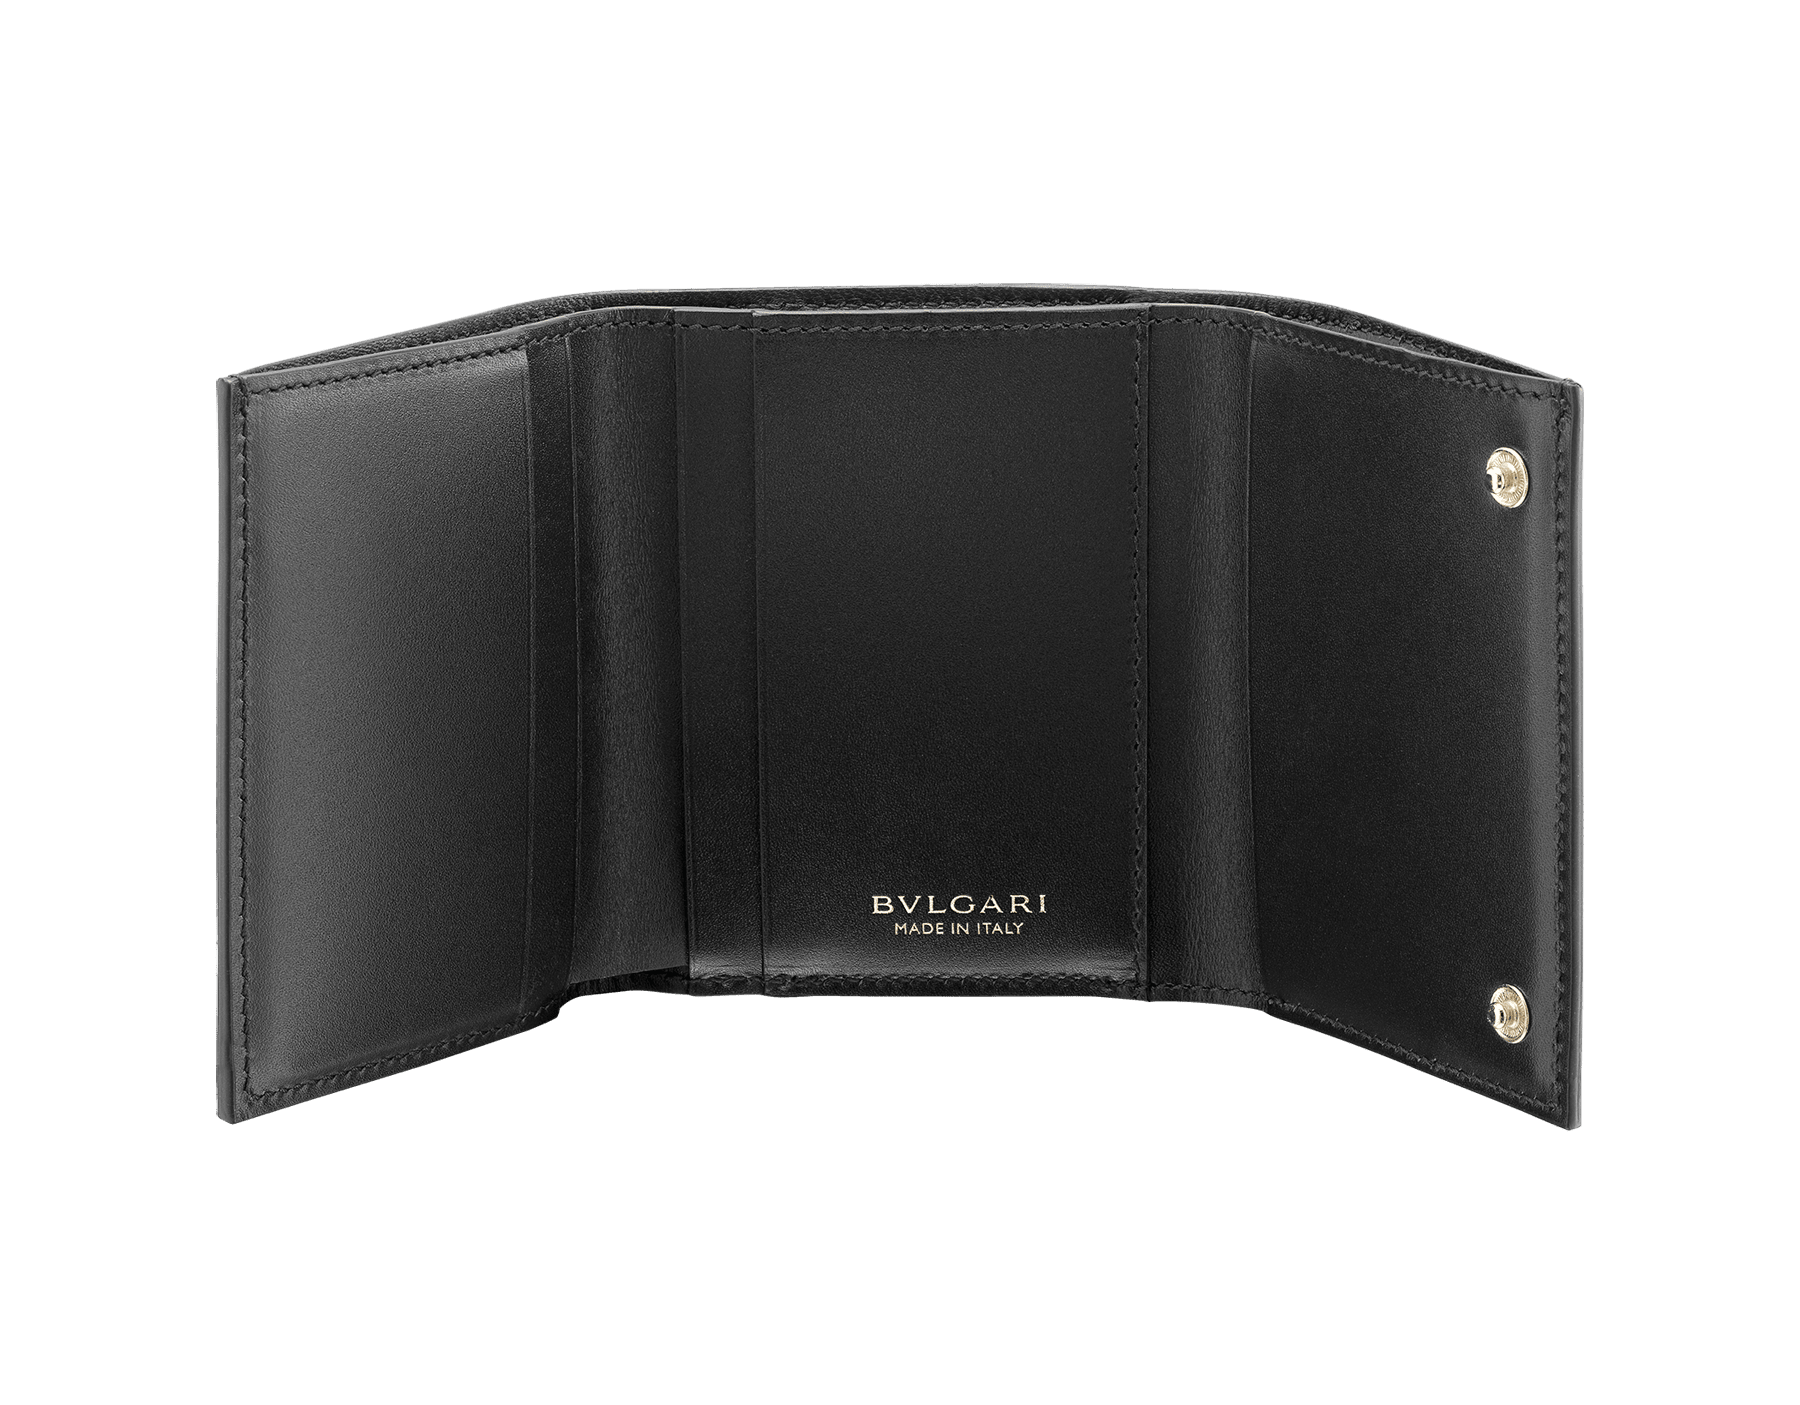 B.zero1 compact wallet in daisy topaz, taffy quartz goatskin and taffy quartz nappa leather. Iconic B.zero1 zipper in light gold plated brass and two press stud closures. BZA-SLIMCOMPACT image 2